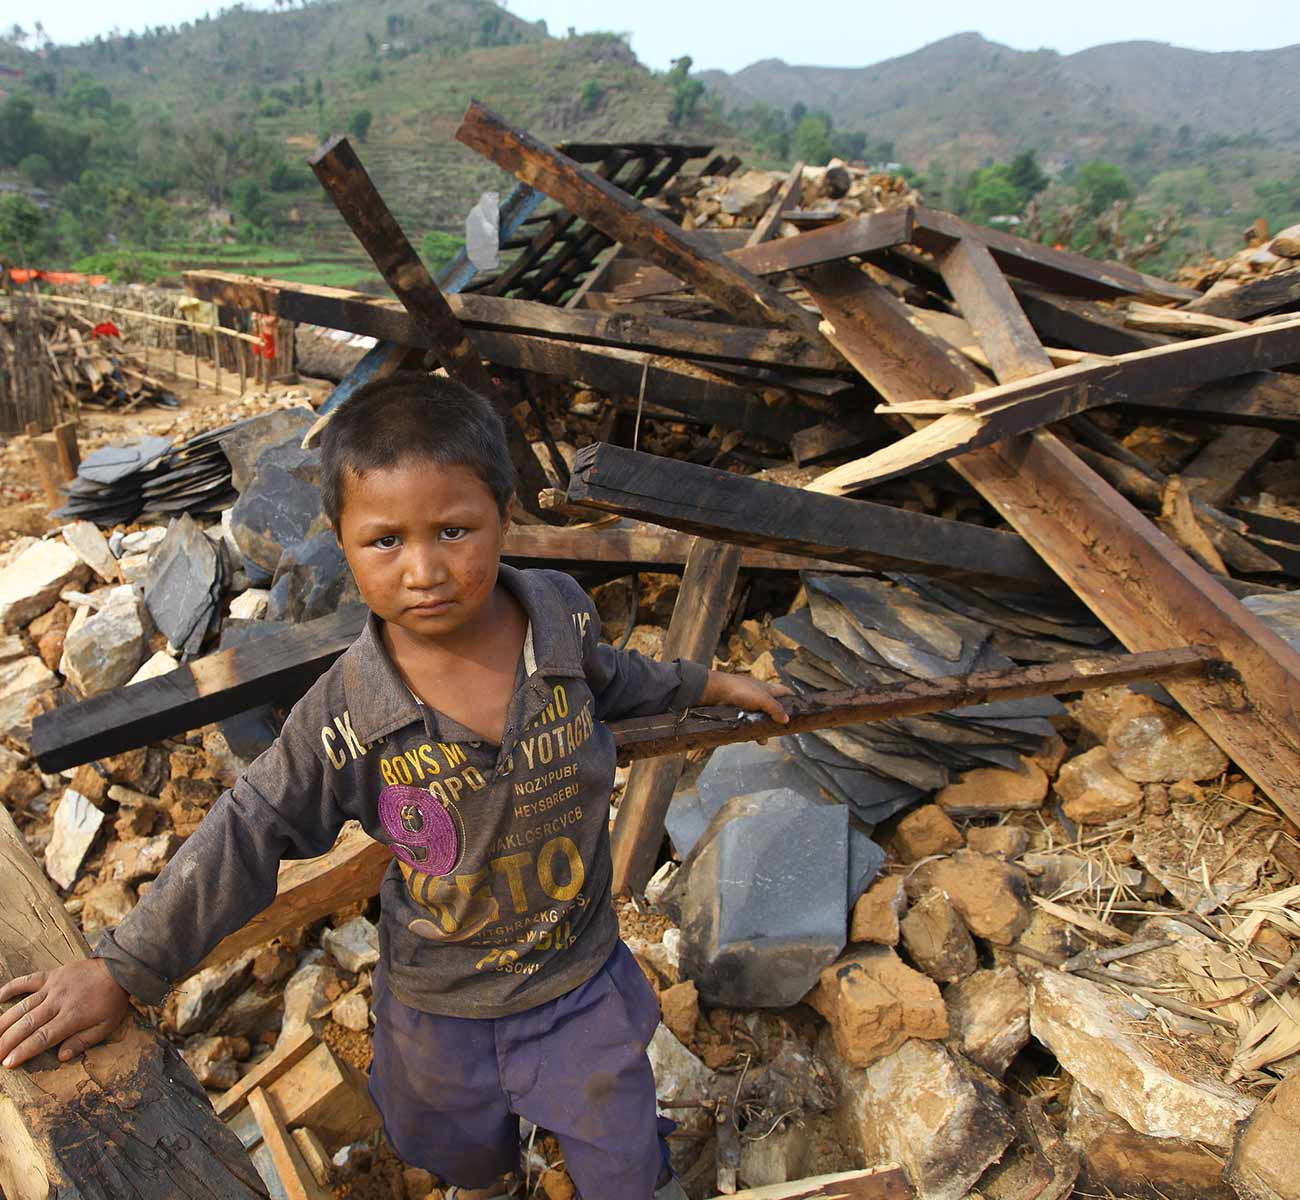 A young boy stands on the rubble of a destroyed home in central Nepal. Donation Form Background